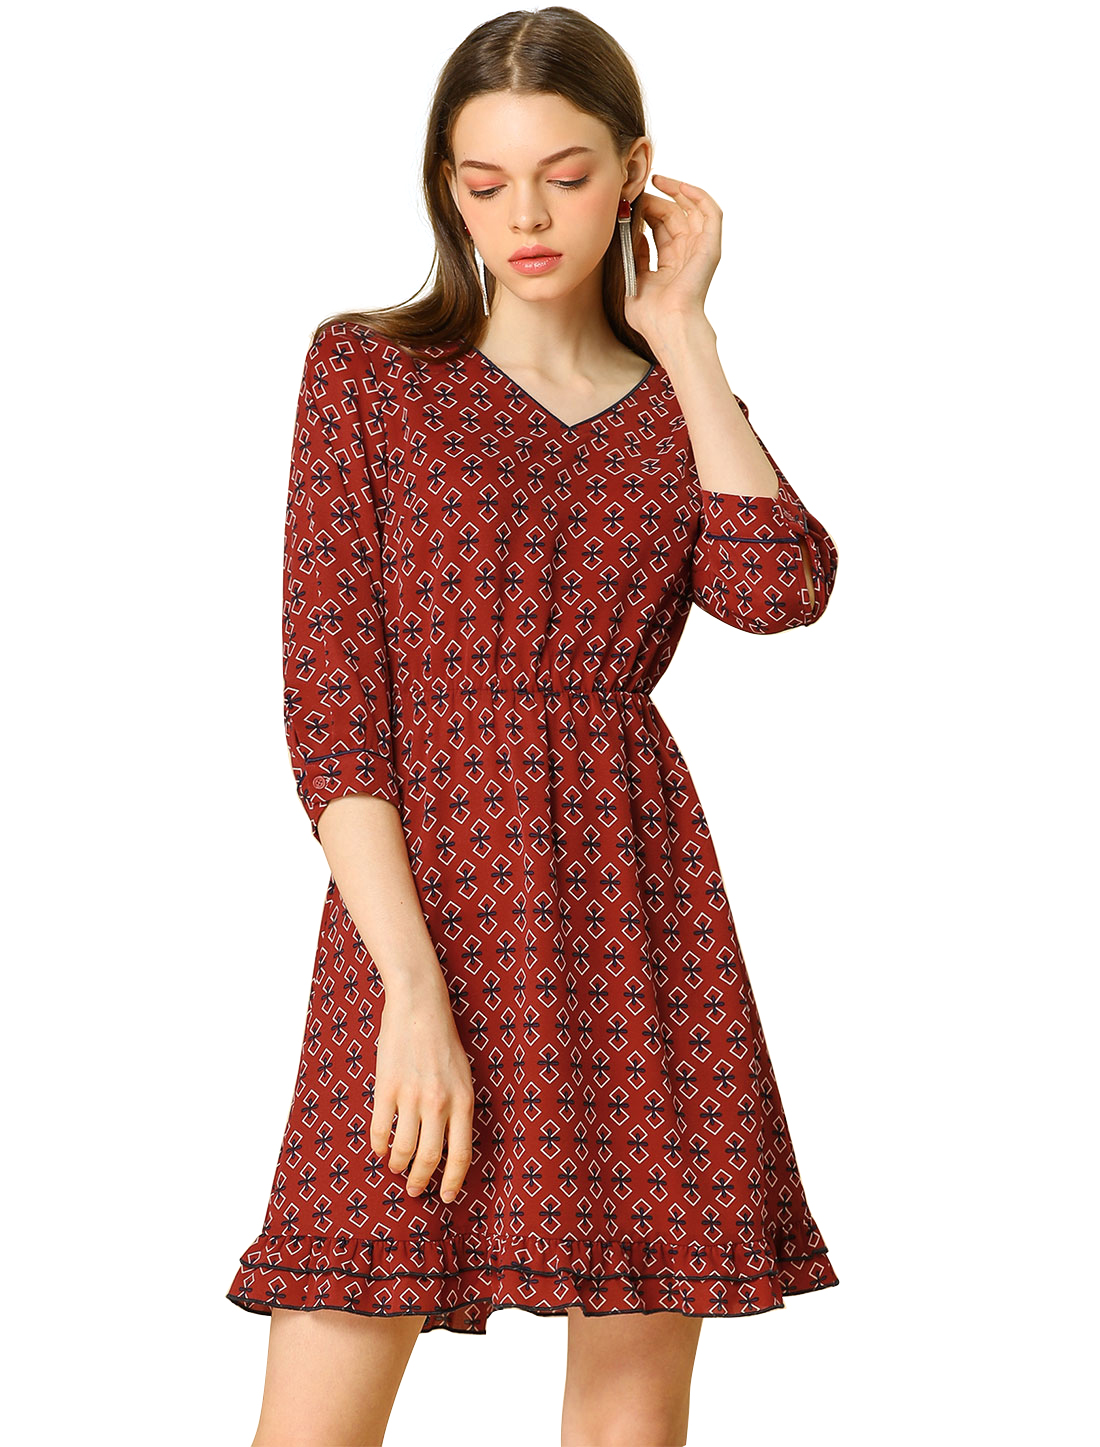 Women's 3/4 Sleeve V Neck Ruffle Hem Geometric Motifs Flare Chiffon Dress Red M